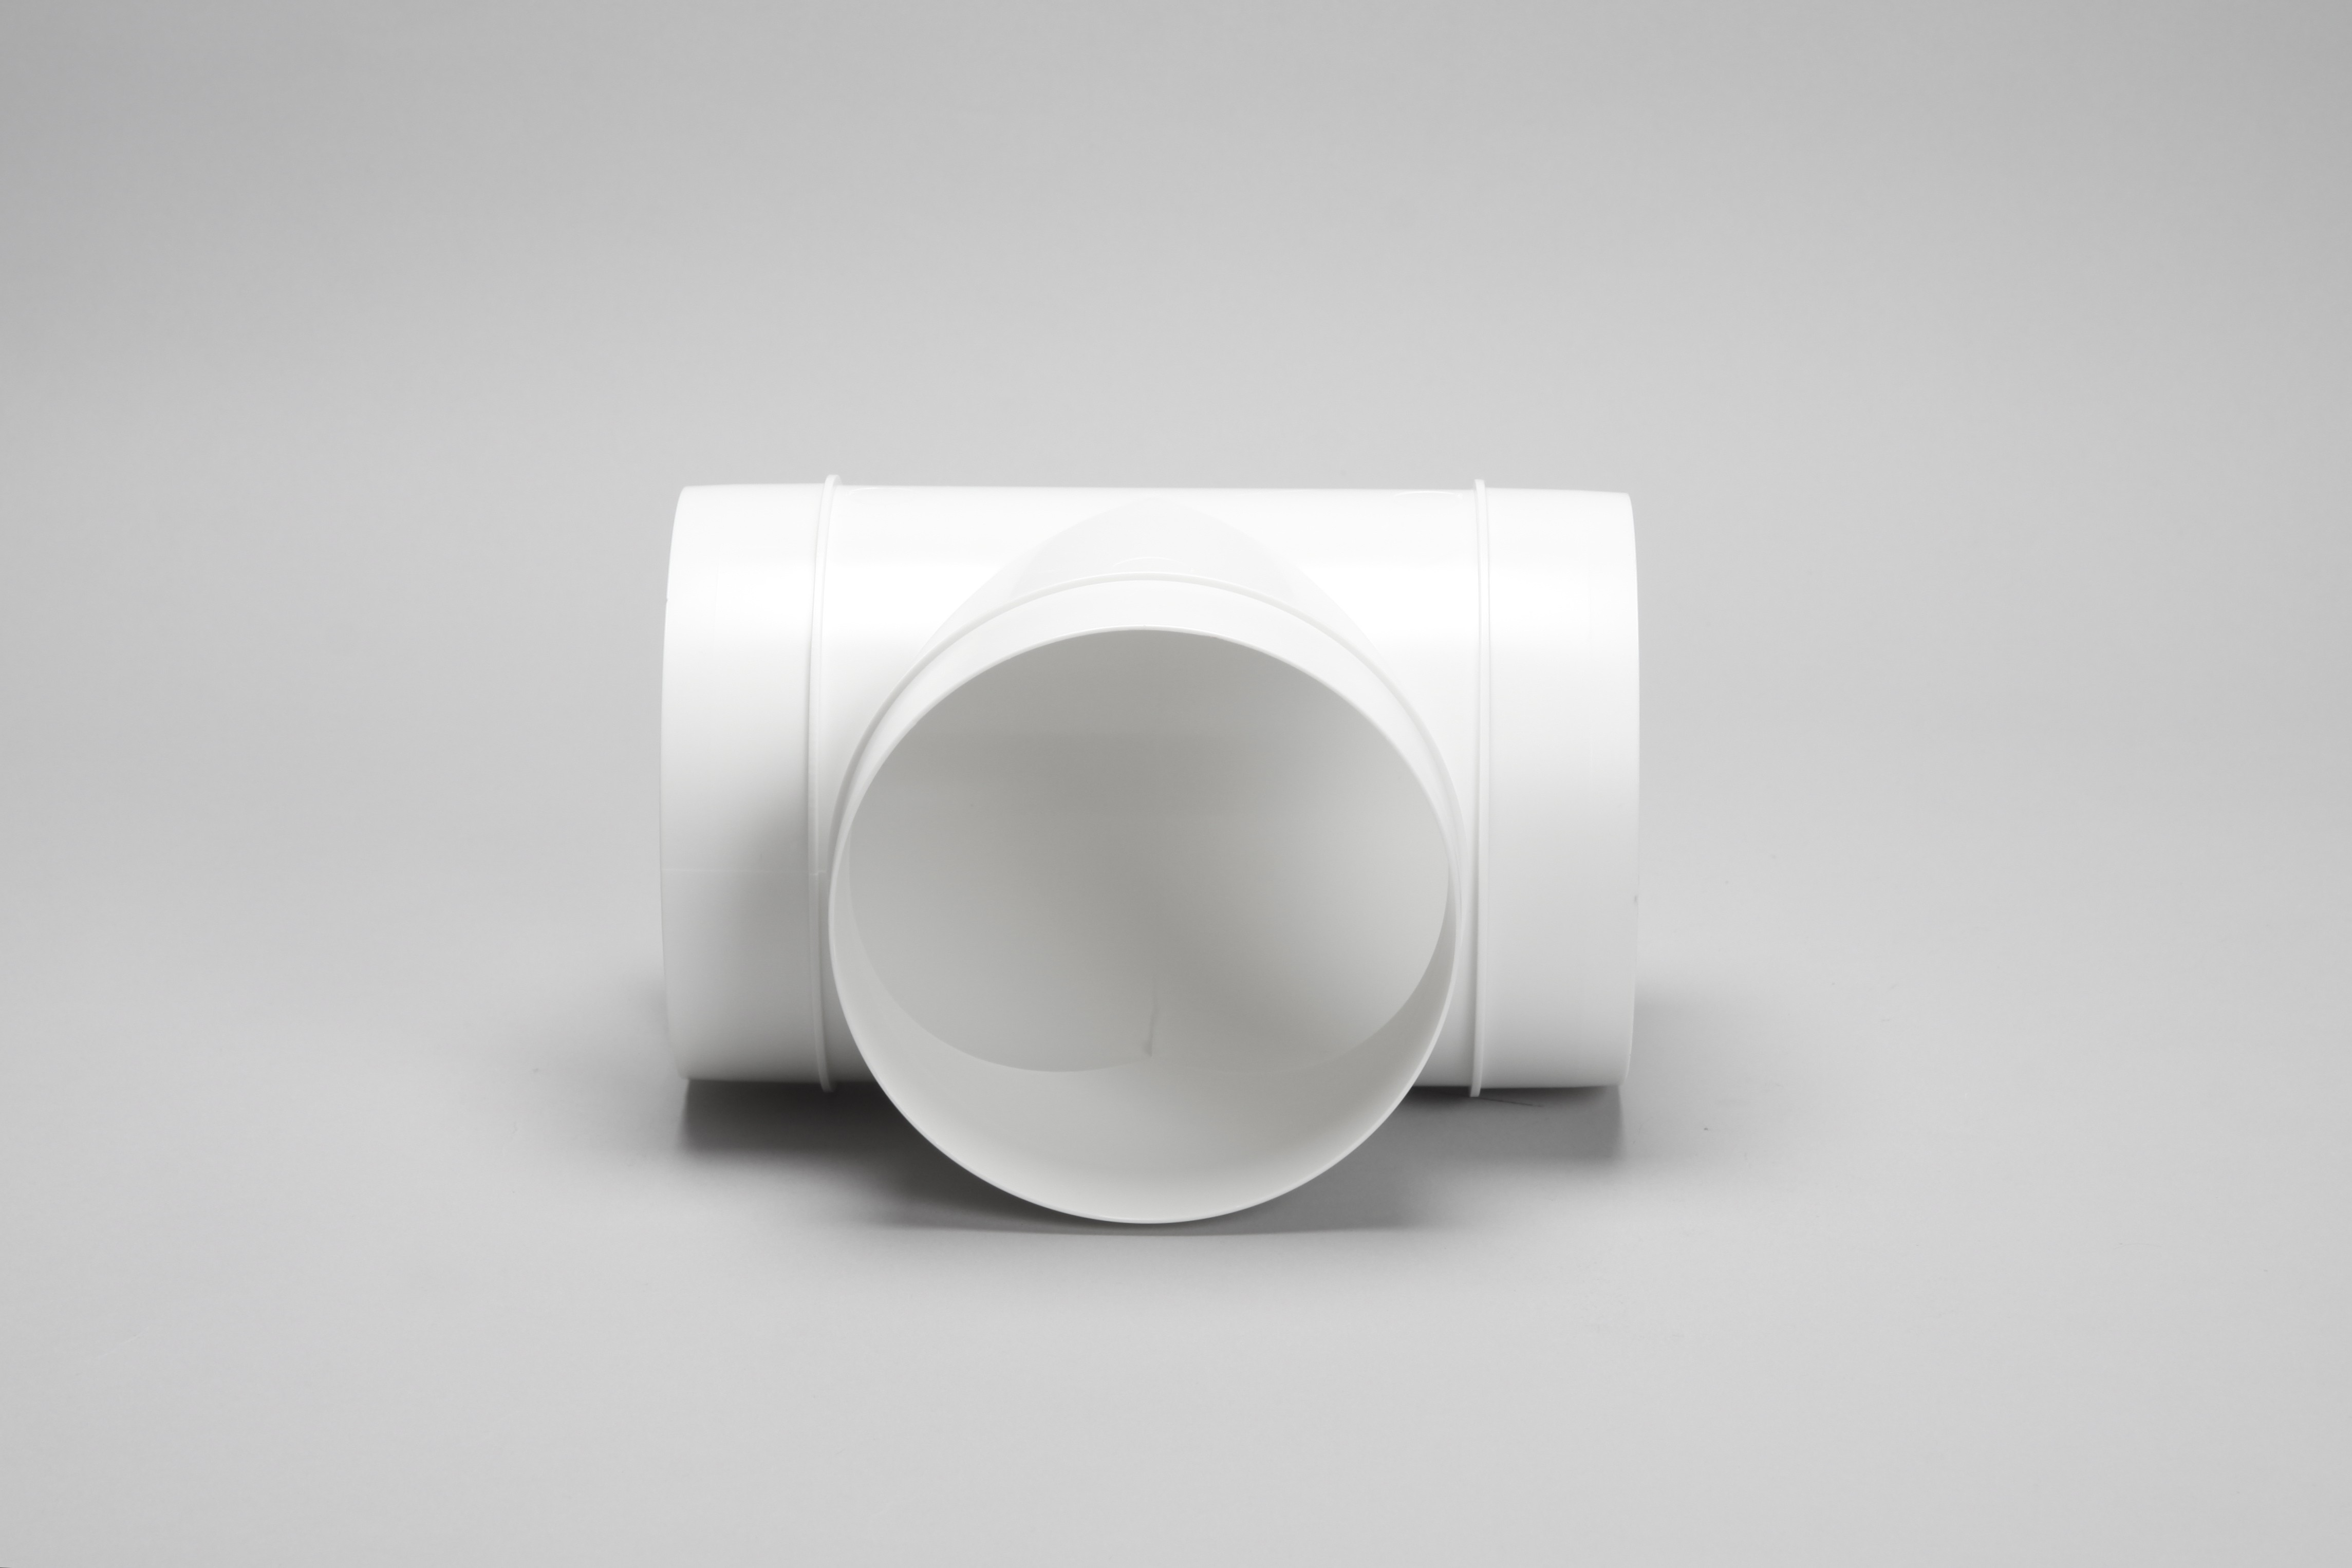 150mm round ducting pipe equal T piece